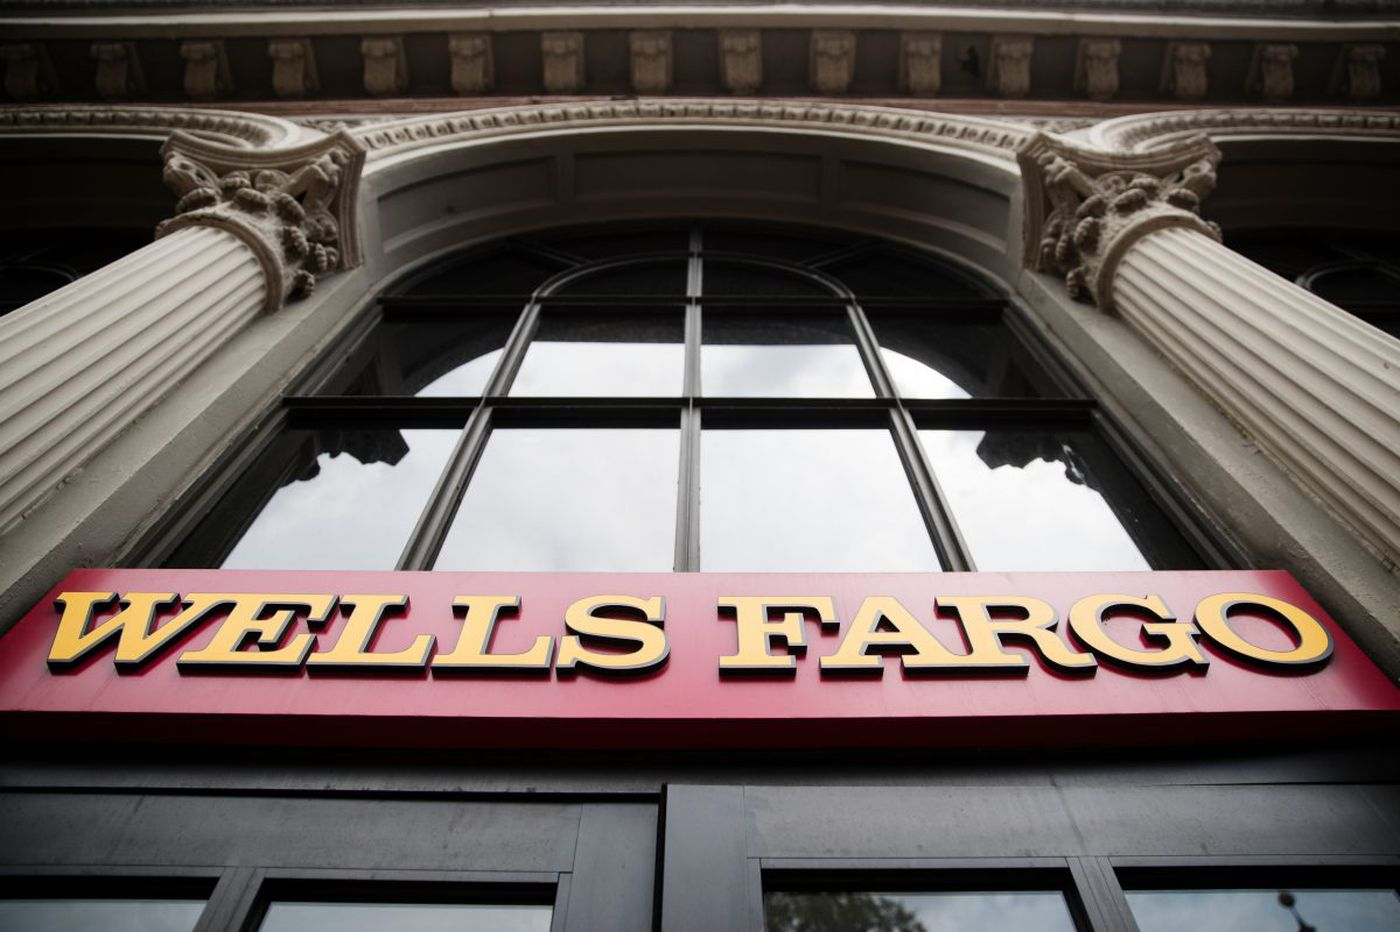 Wells Fargo says it faces $1 billion penalty for mortgage